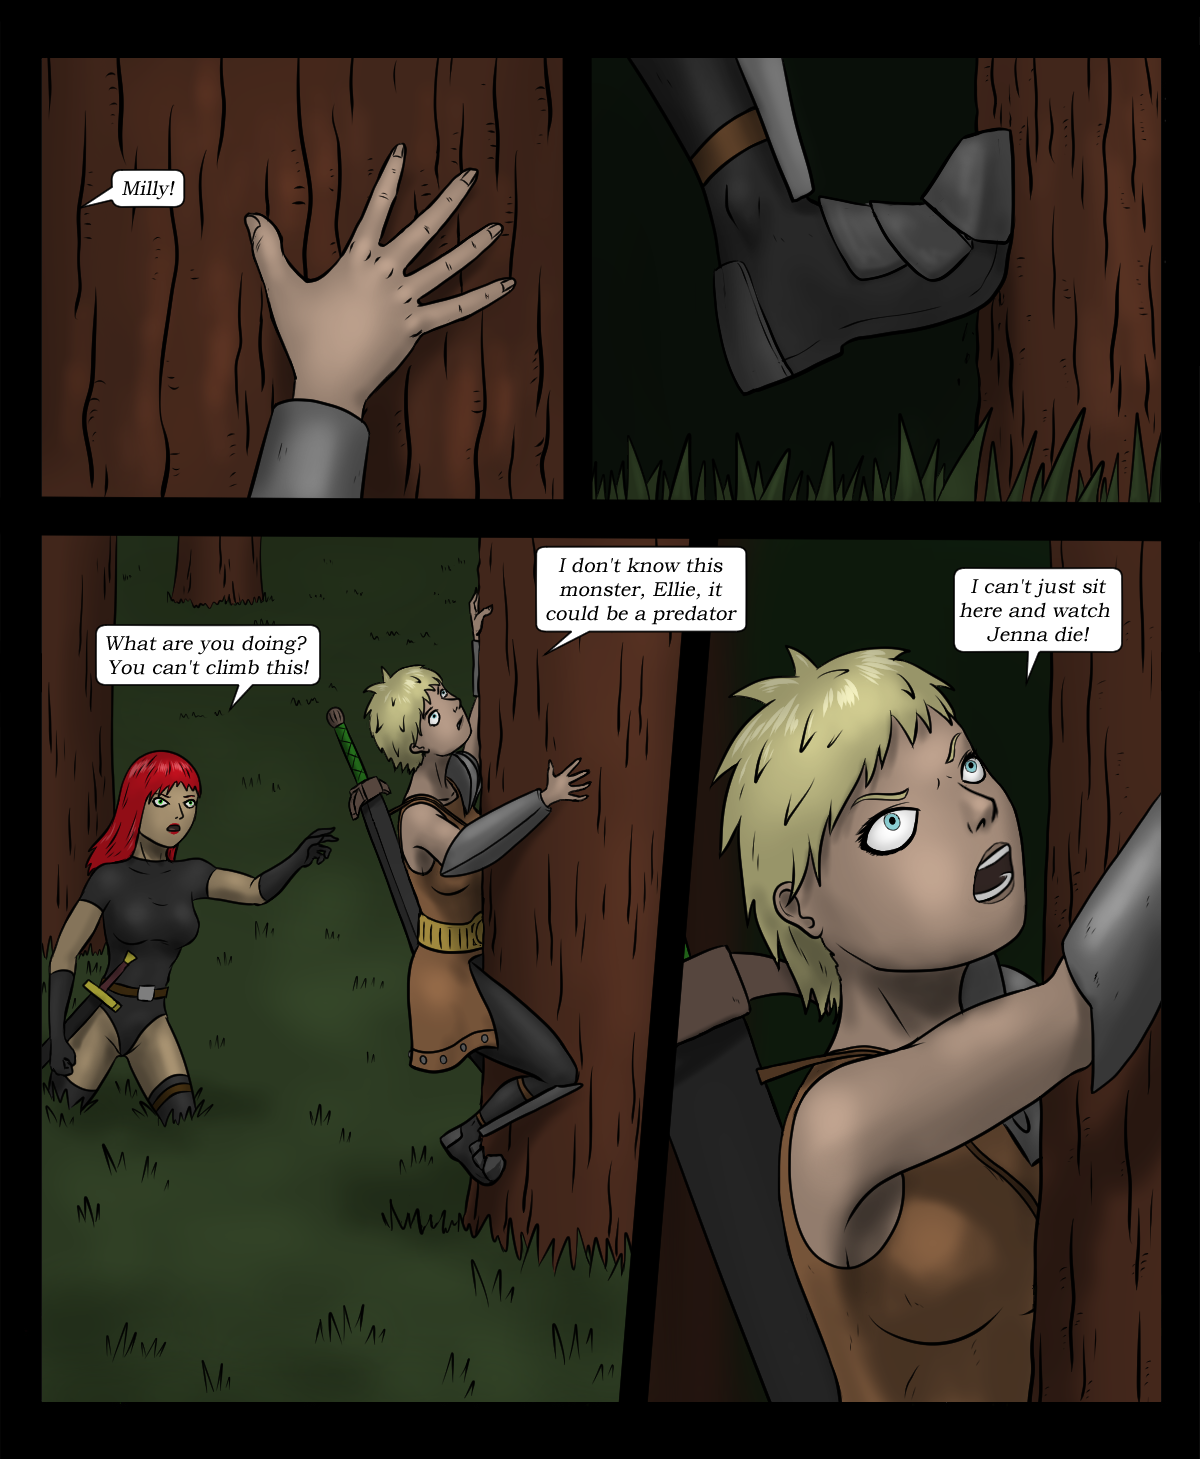 Page 74 - Doing something